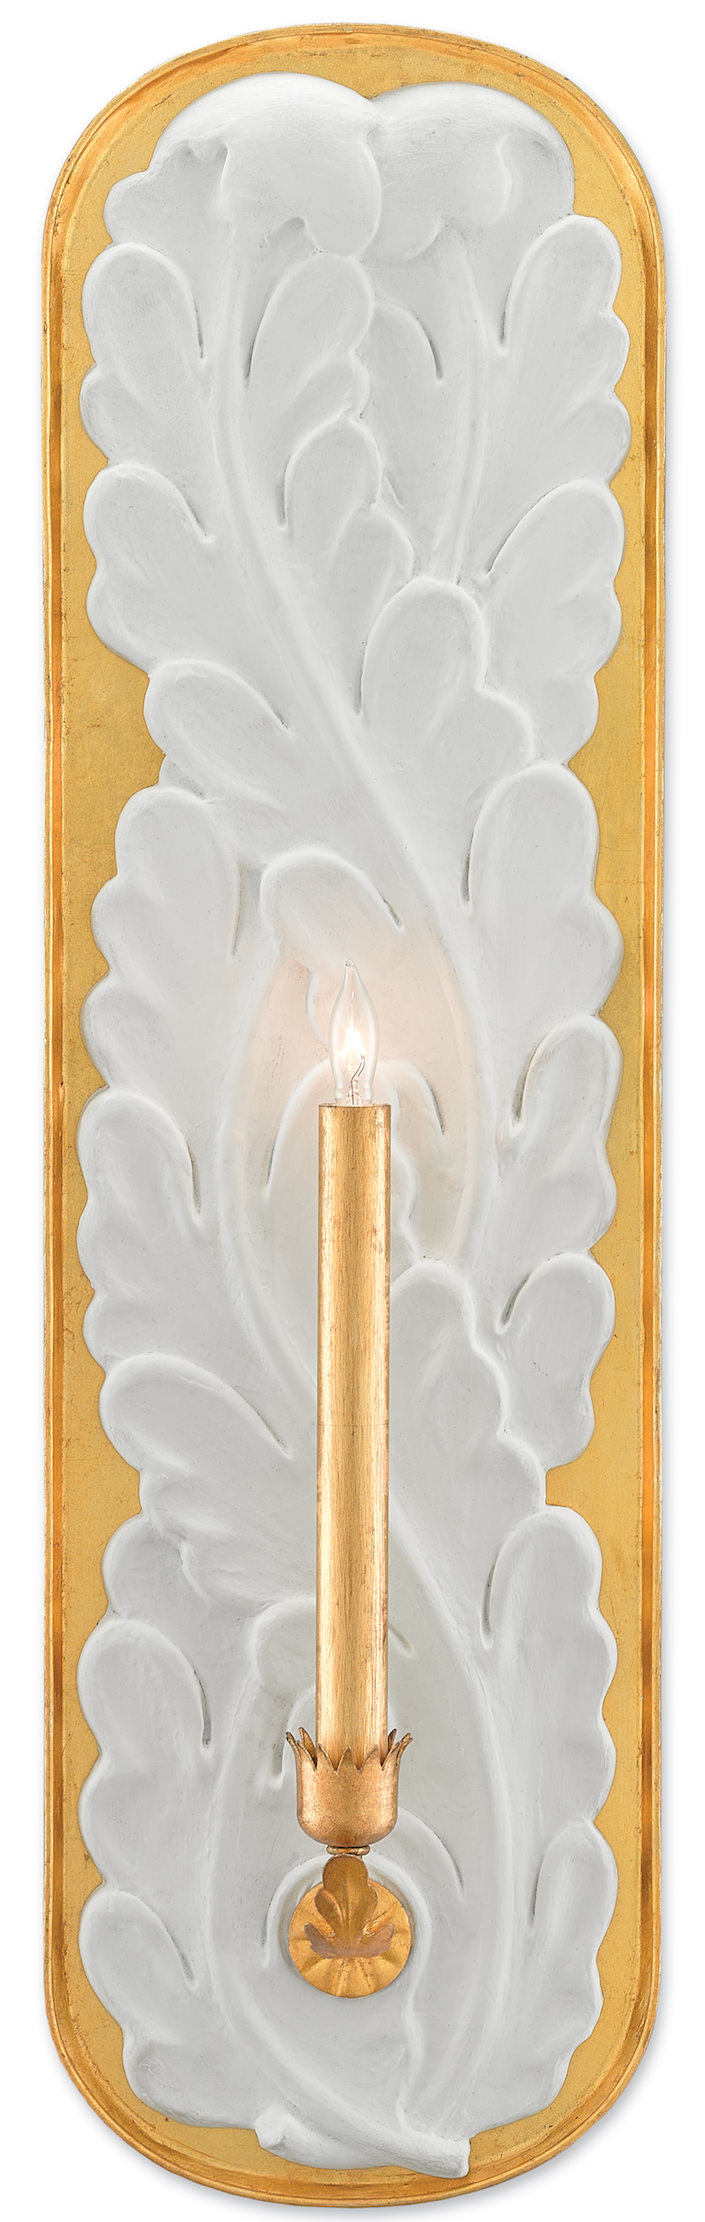 Bunny Williams Lighting for Currey & Company Weslyn Wall sconce-1